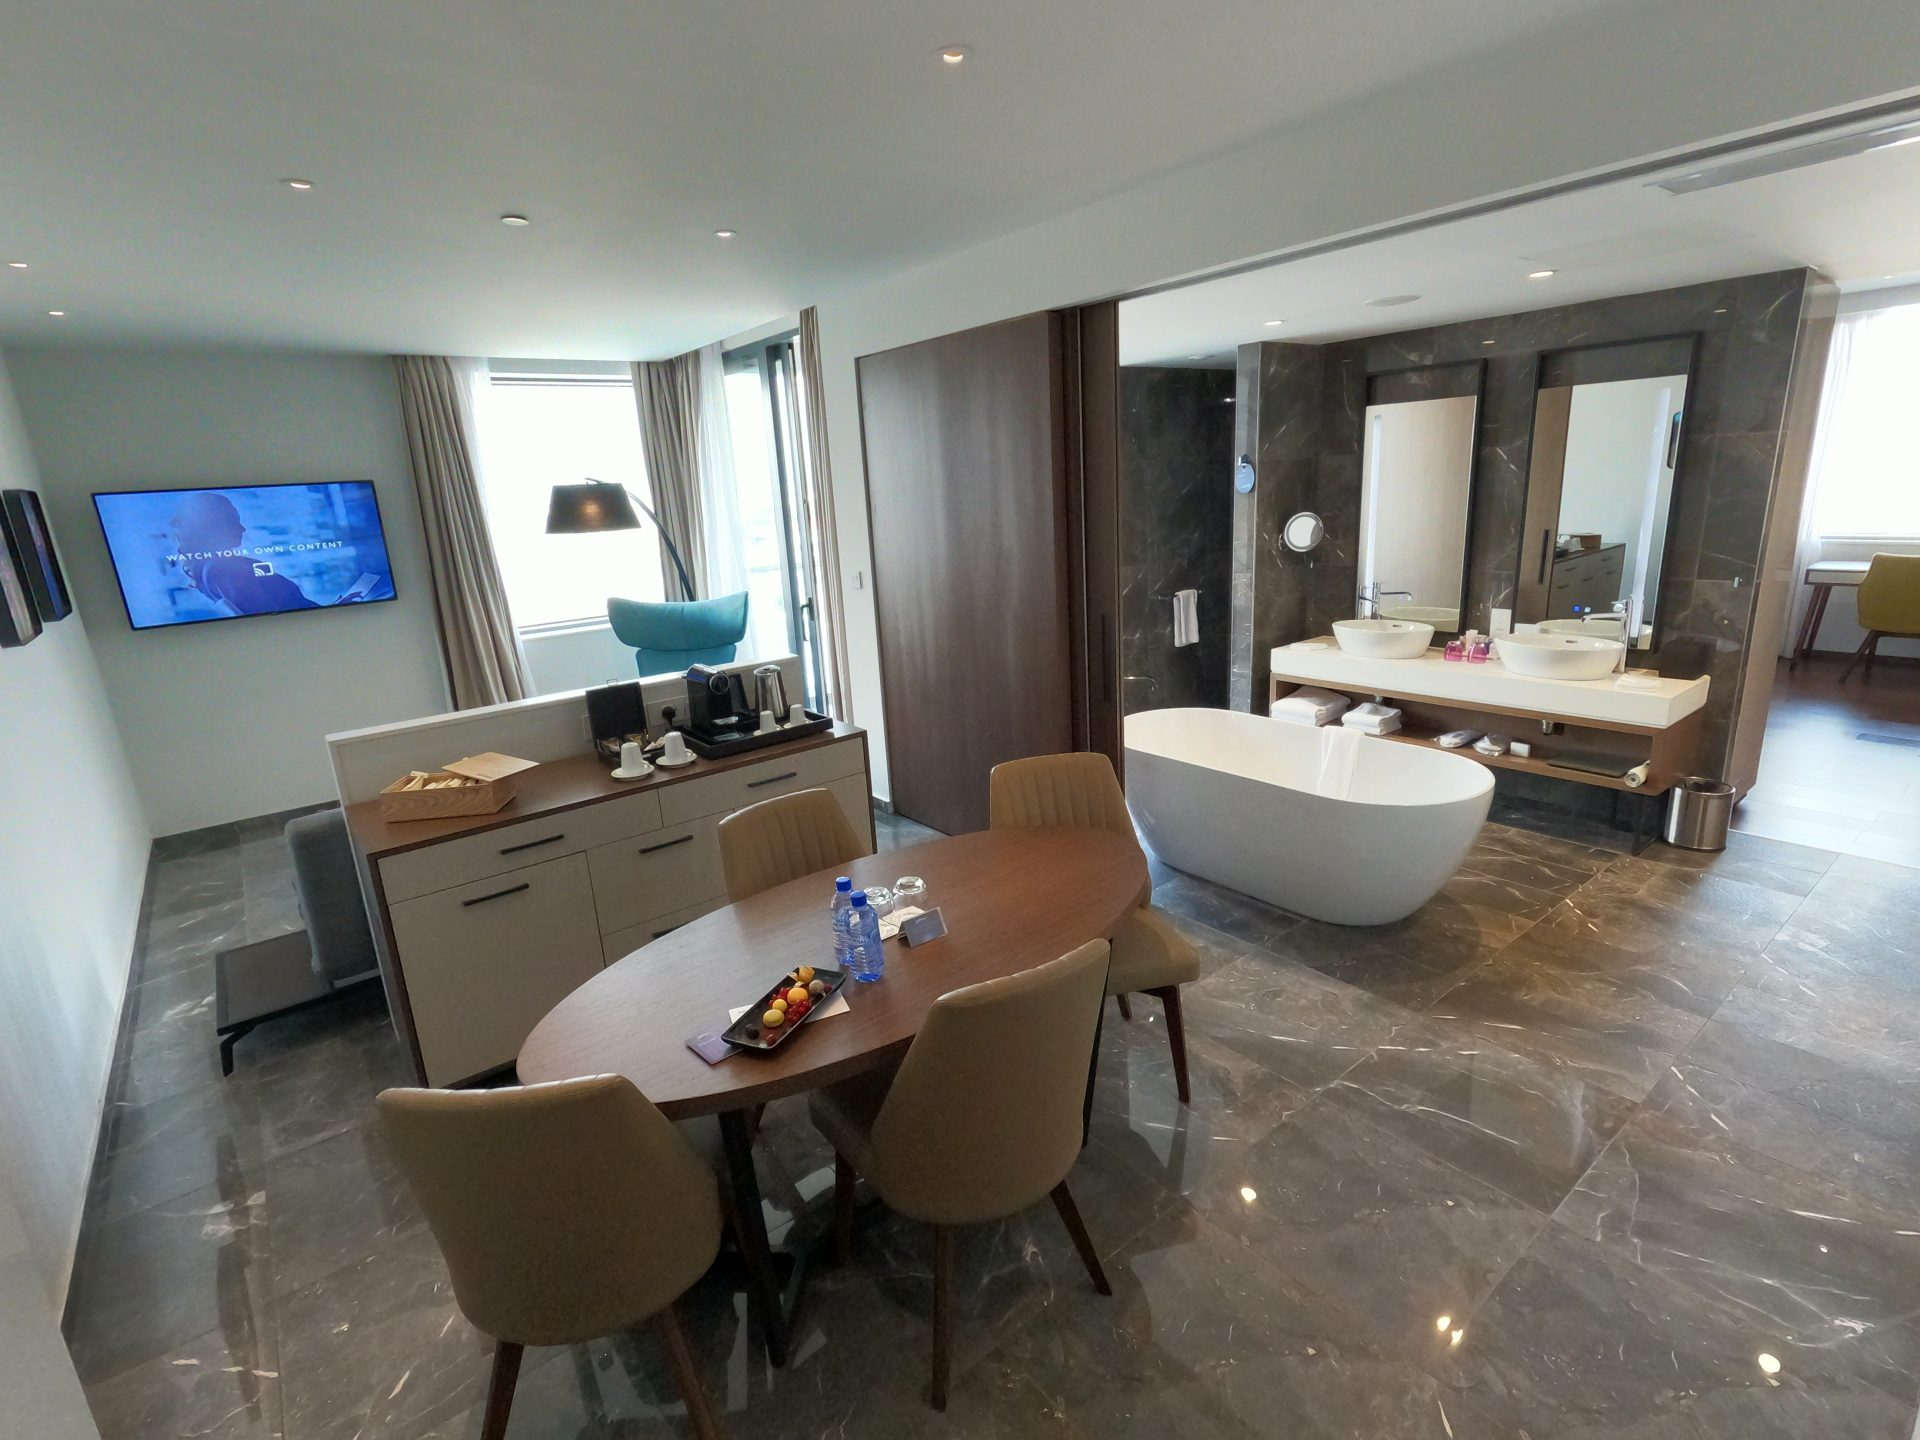 Dining room, living room and bathroom